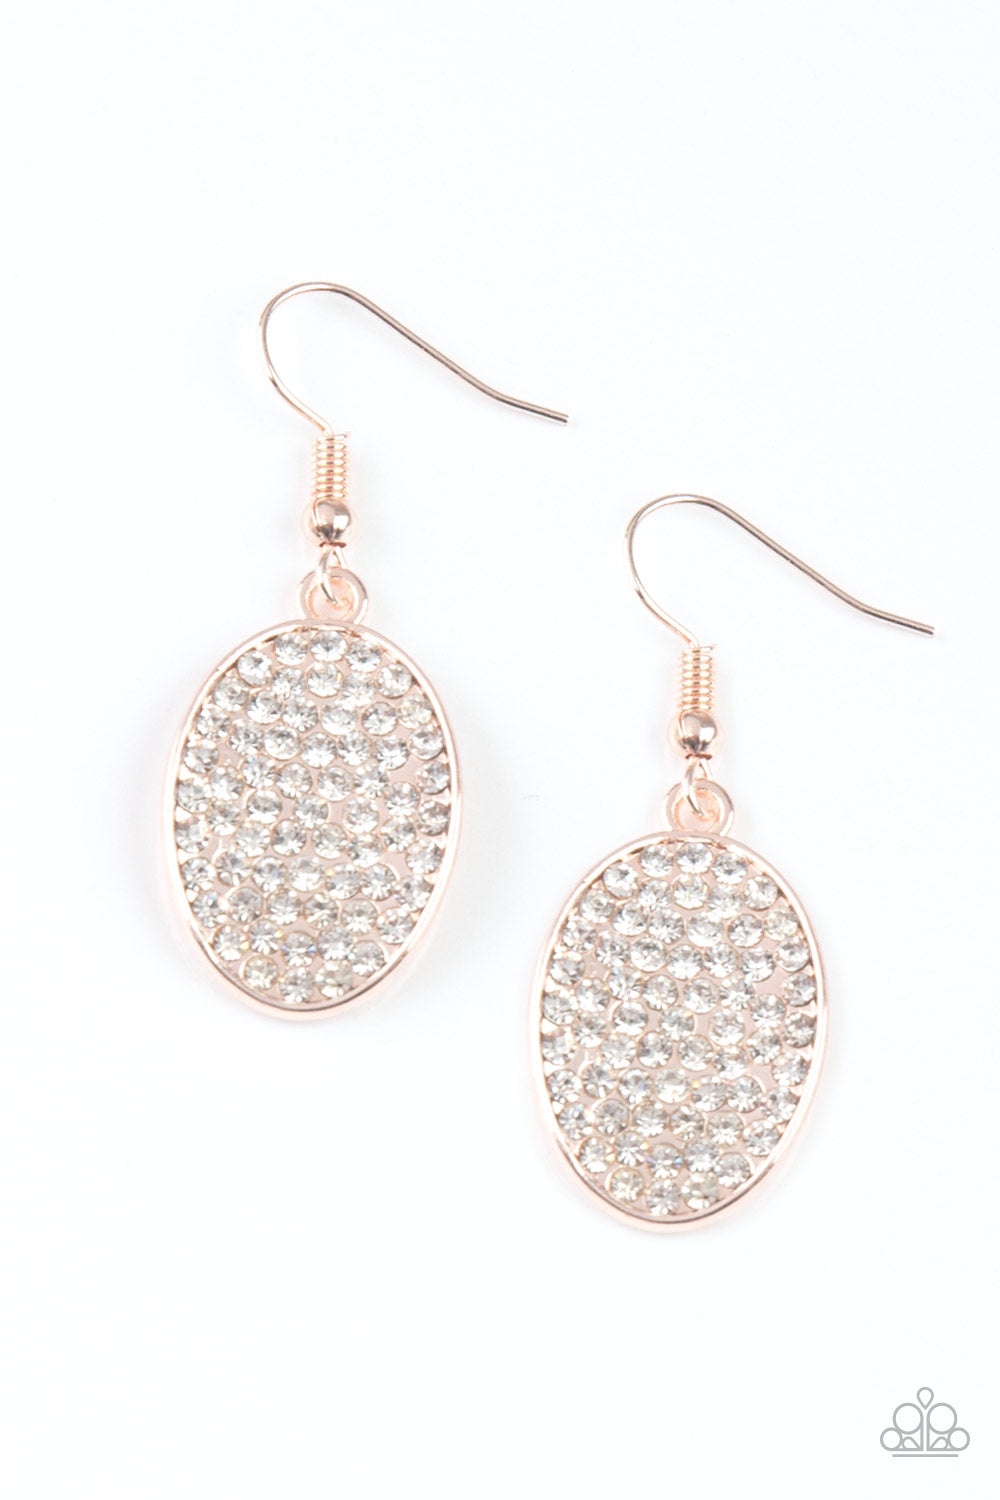 All Dazzle Earrings